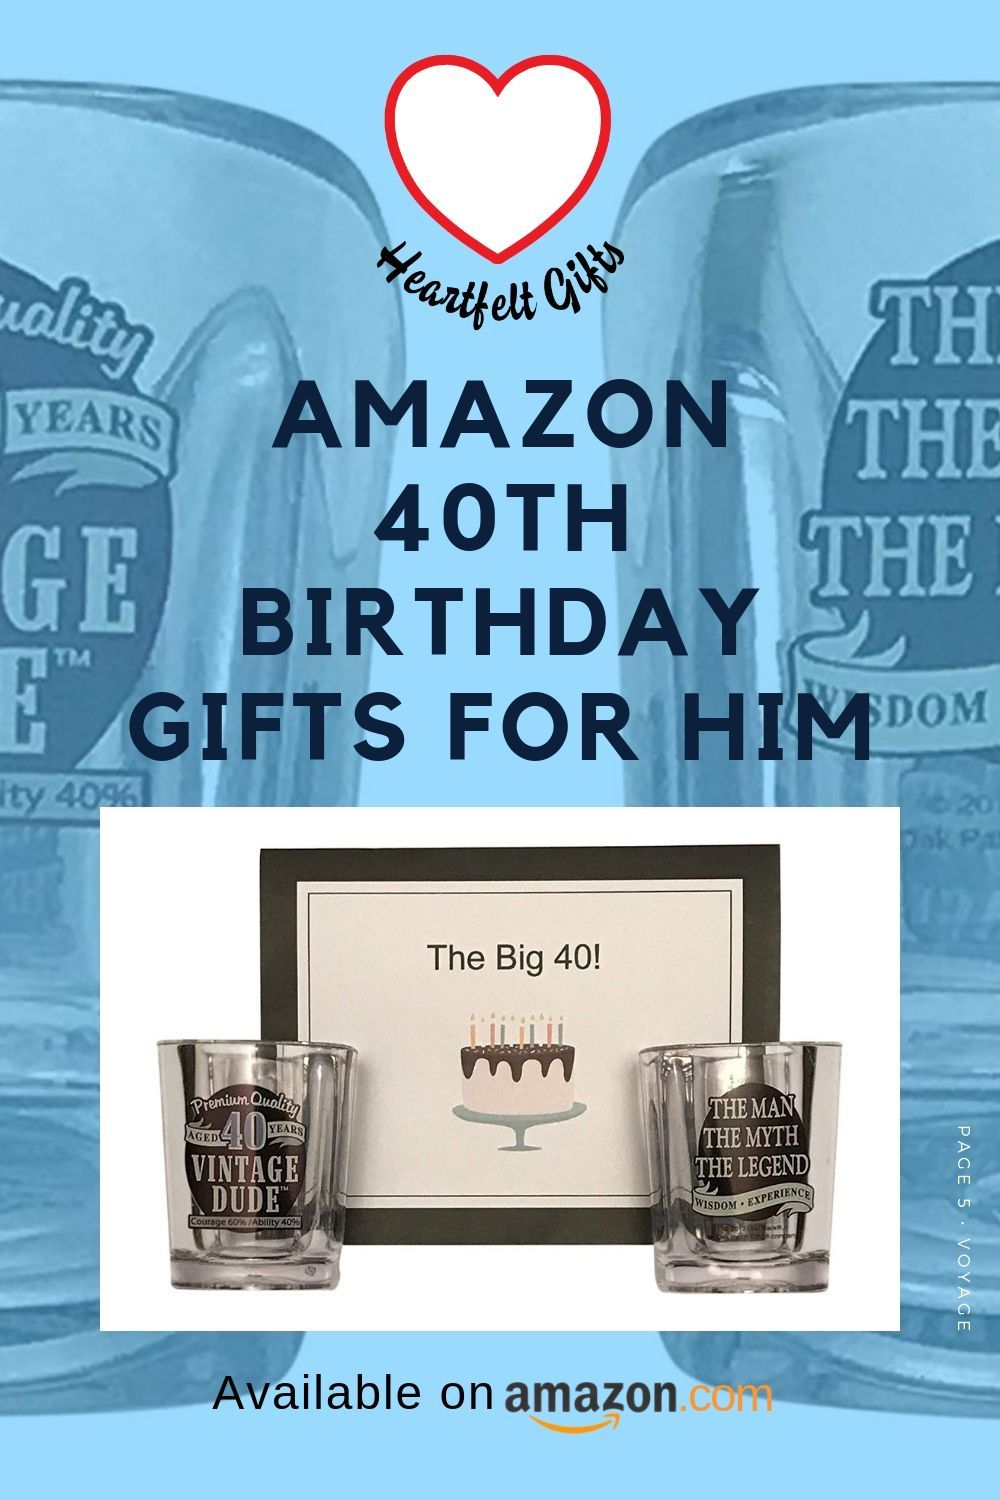 Amazon's 40th birthday gifts for him! The best birthday